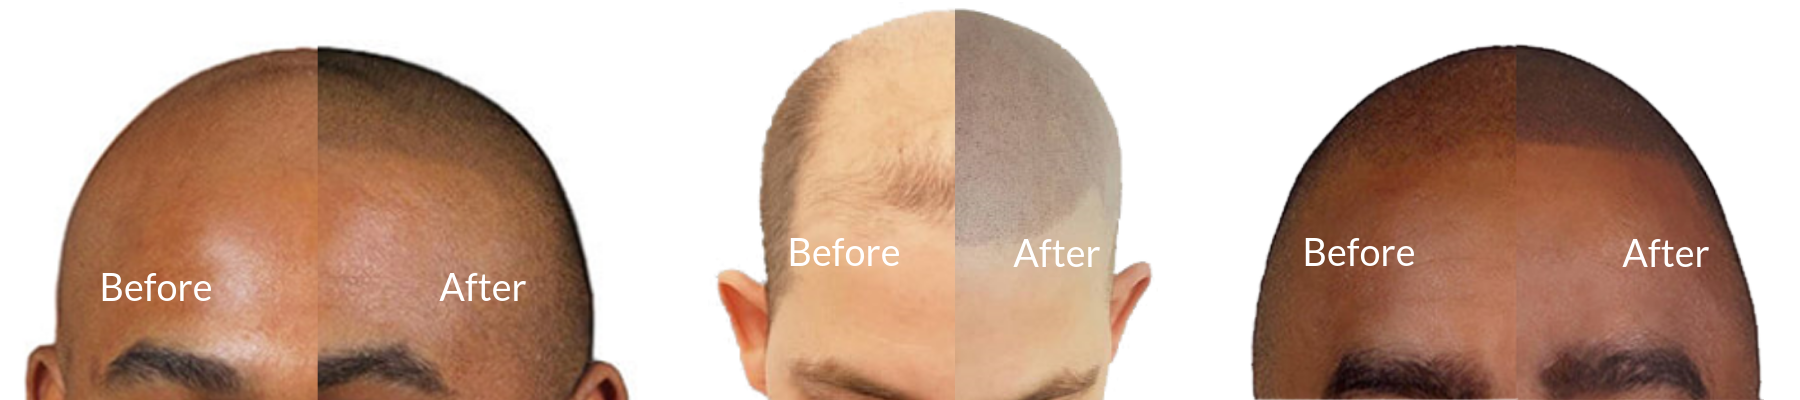 Before and After Scalp Tattoo - Micropigmentation